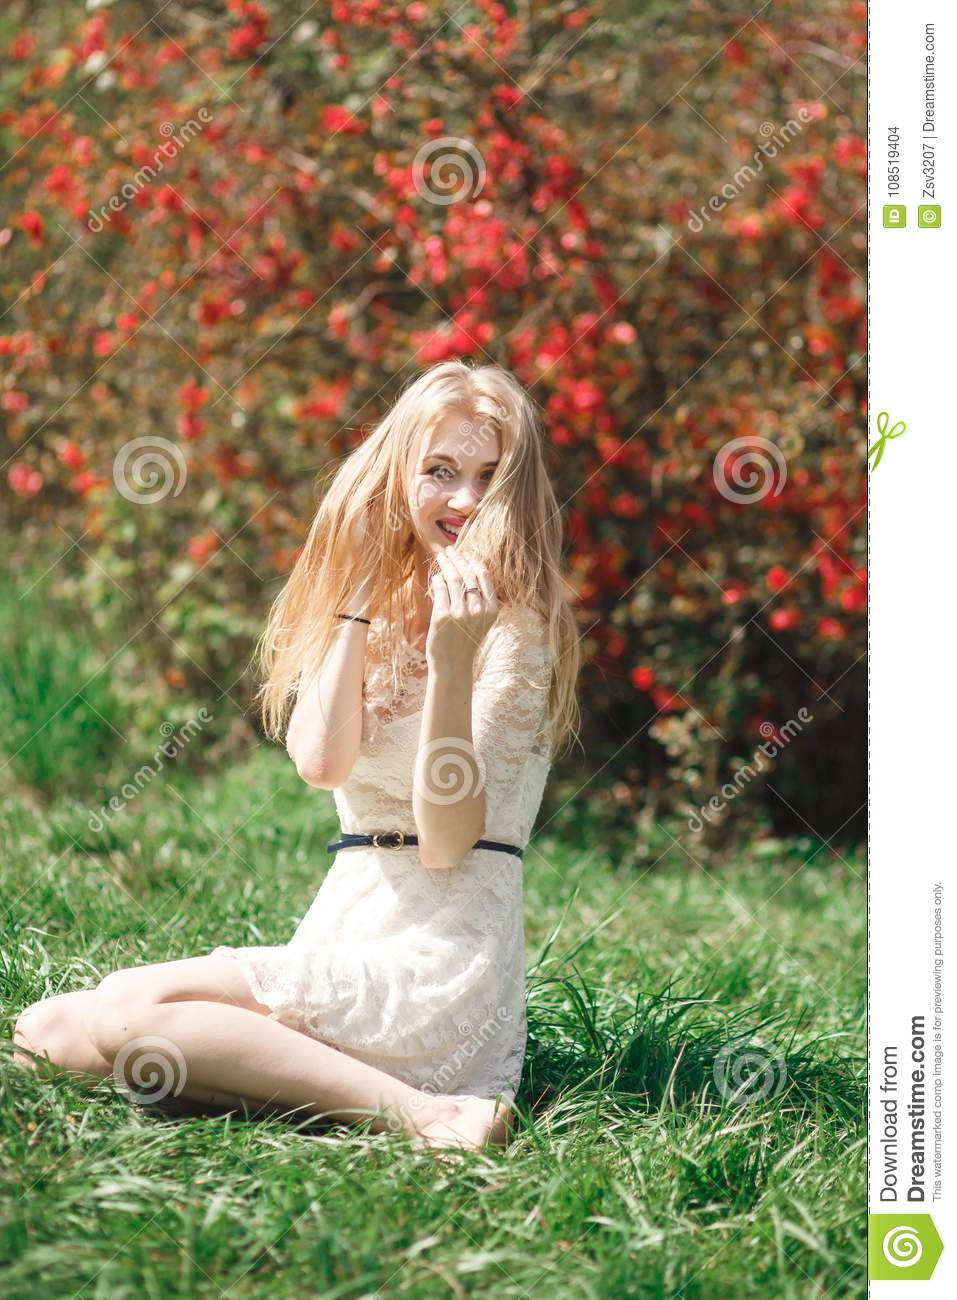 Beautiful young woman enjoying sunny day in park during blossom season on a  nice spring day. 88505cebf